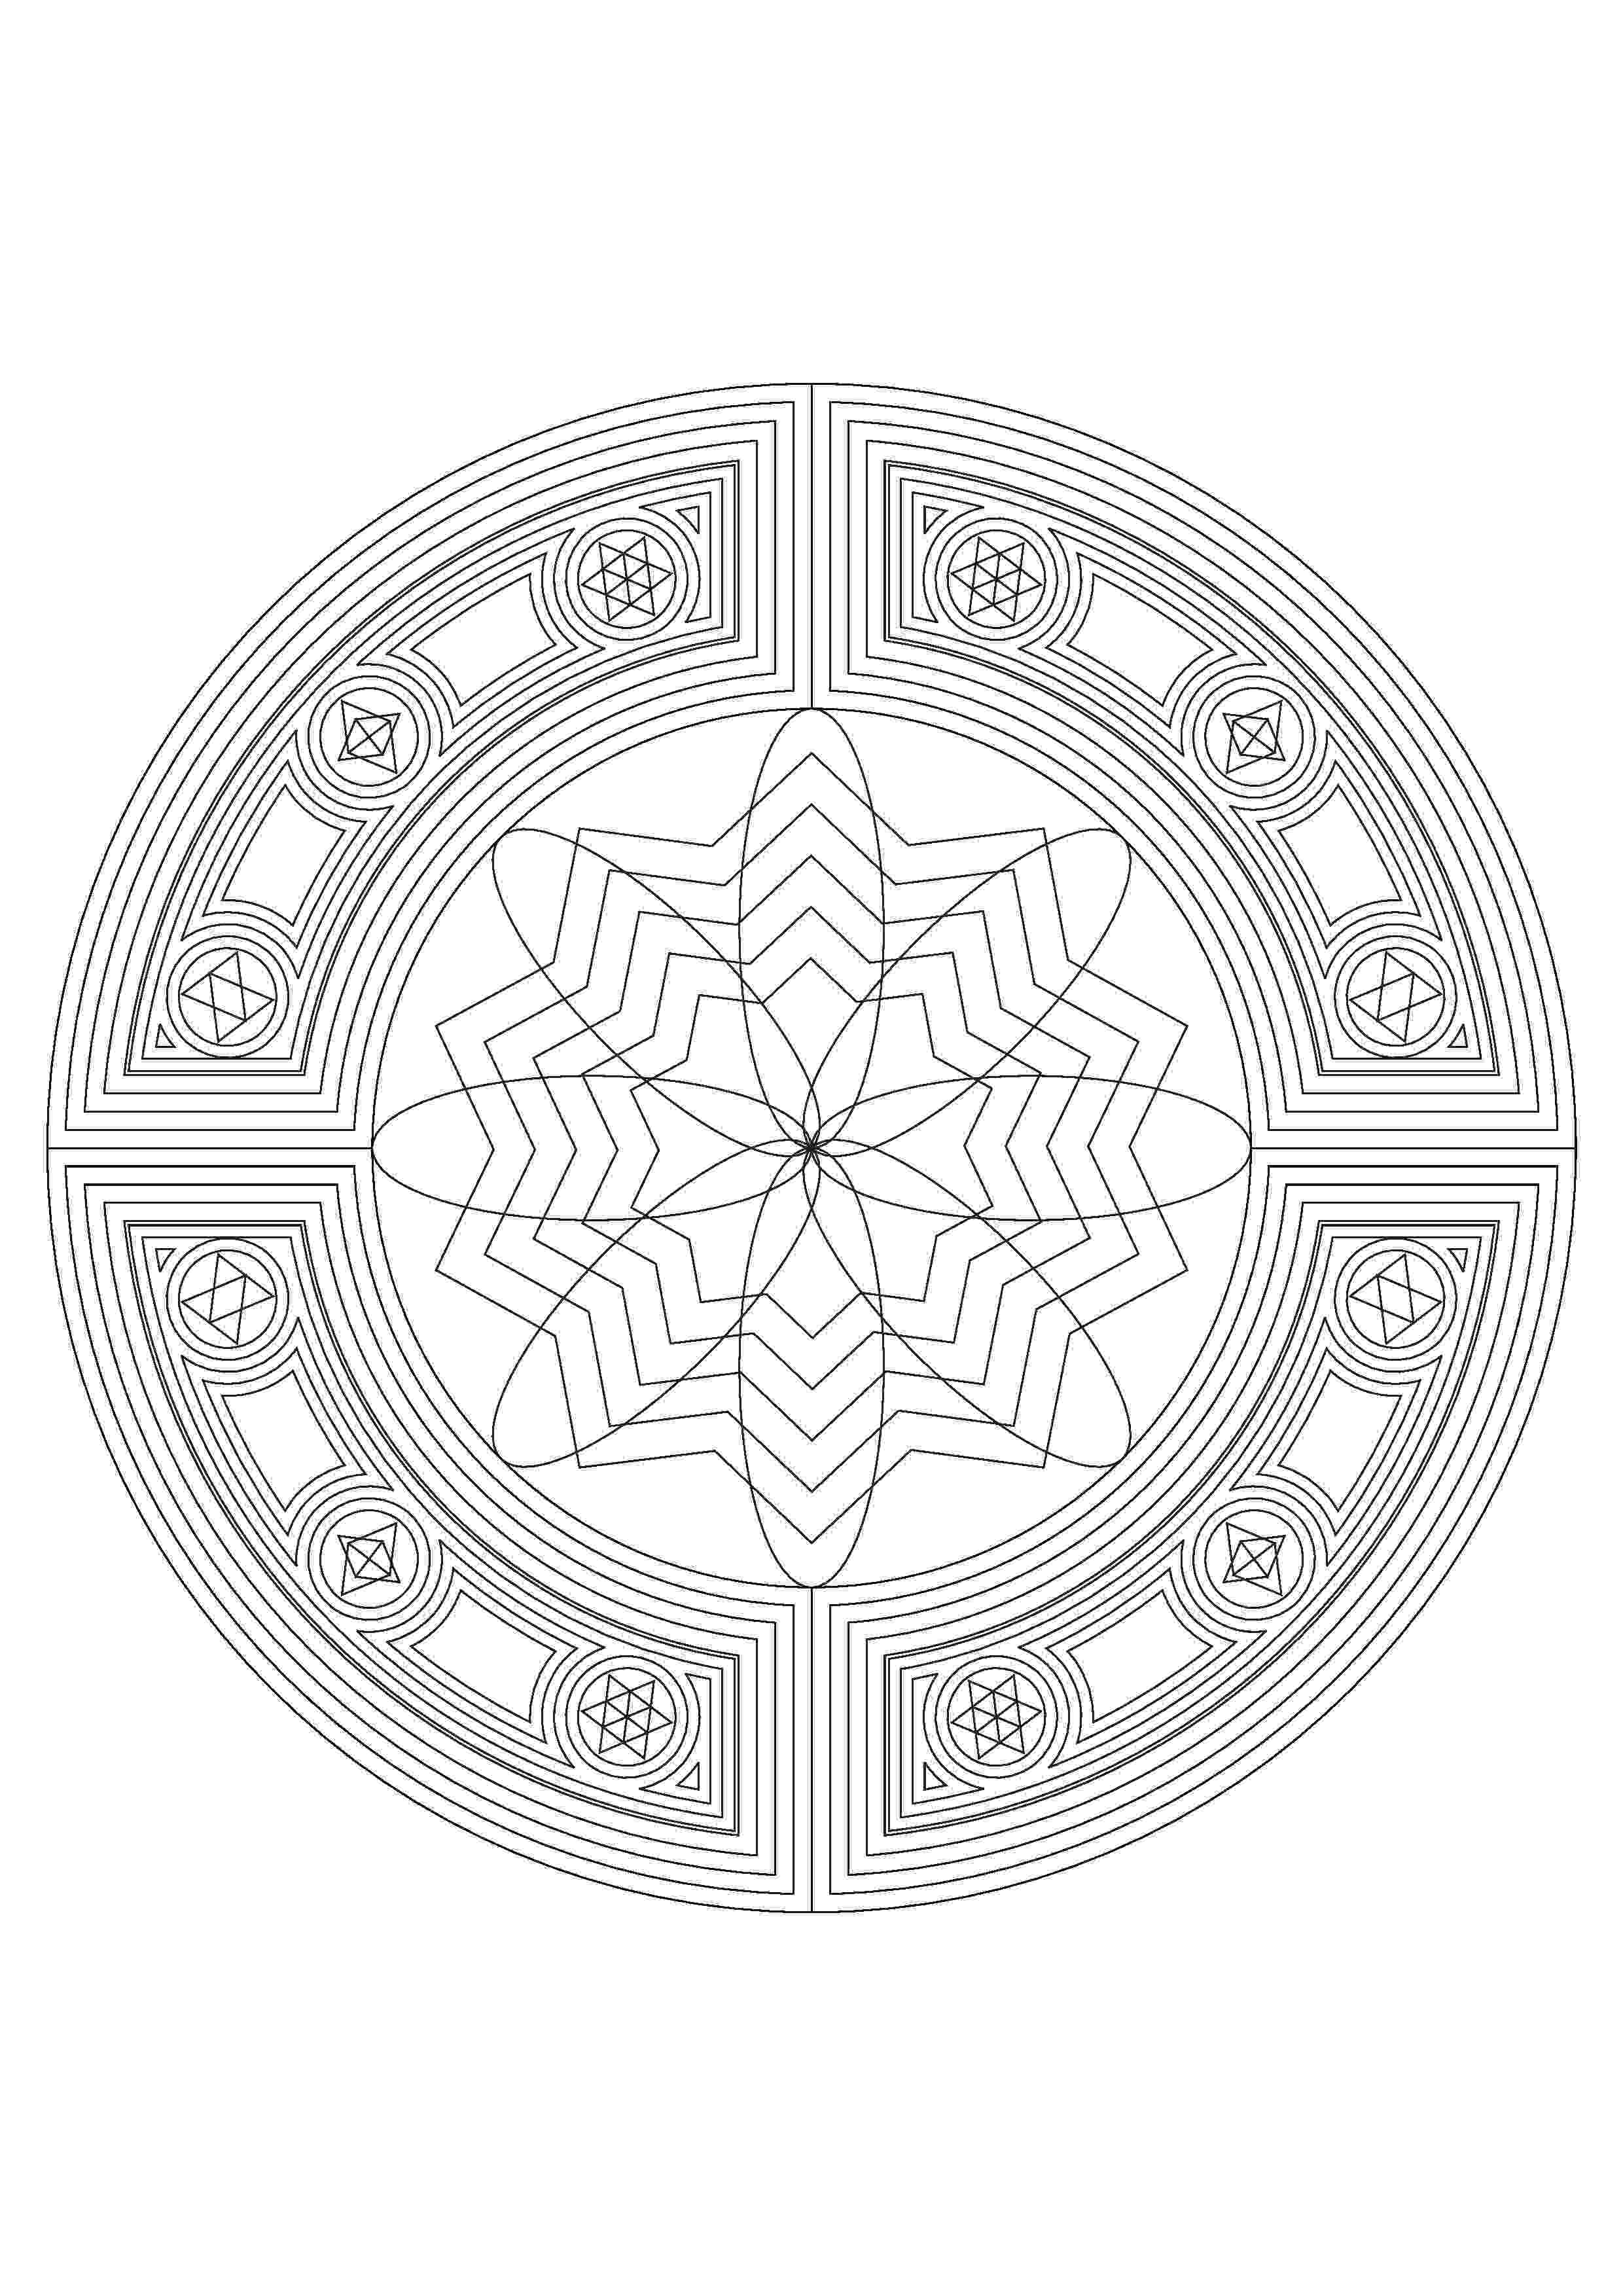 online coloring pages mandalas how to make your own mandala coloring pages for free mandalas pages coloring online